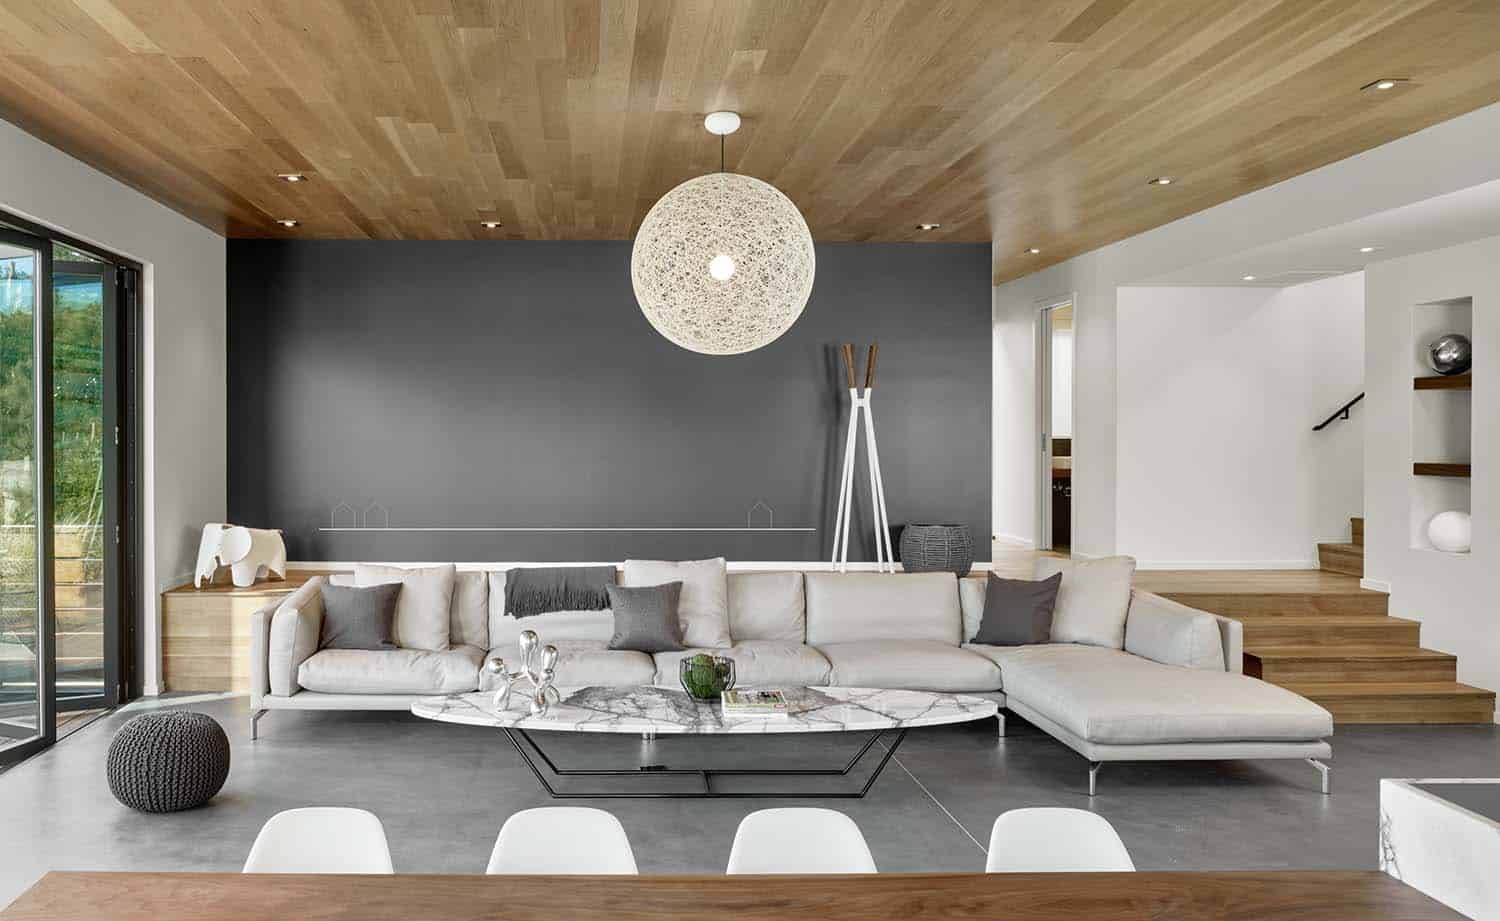 Midcentury-Inspired Home-Knock Architecture and Design-06-1 Kindesign